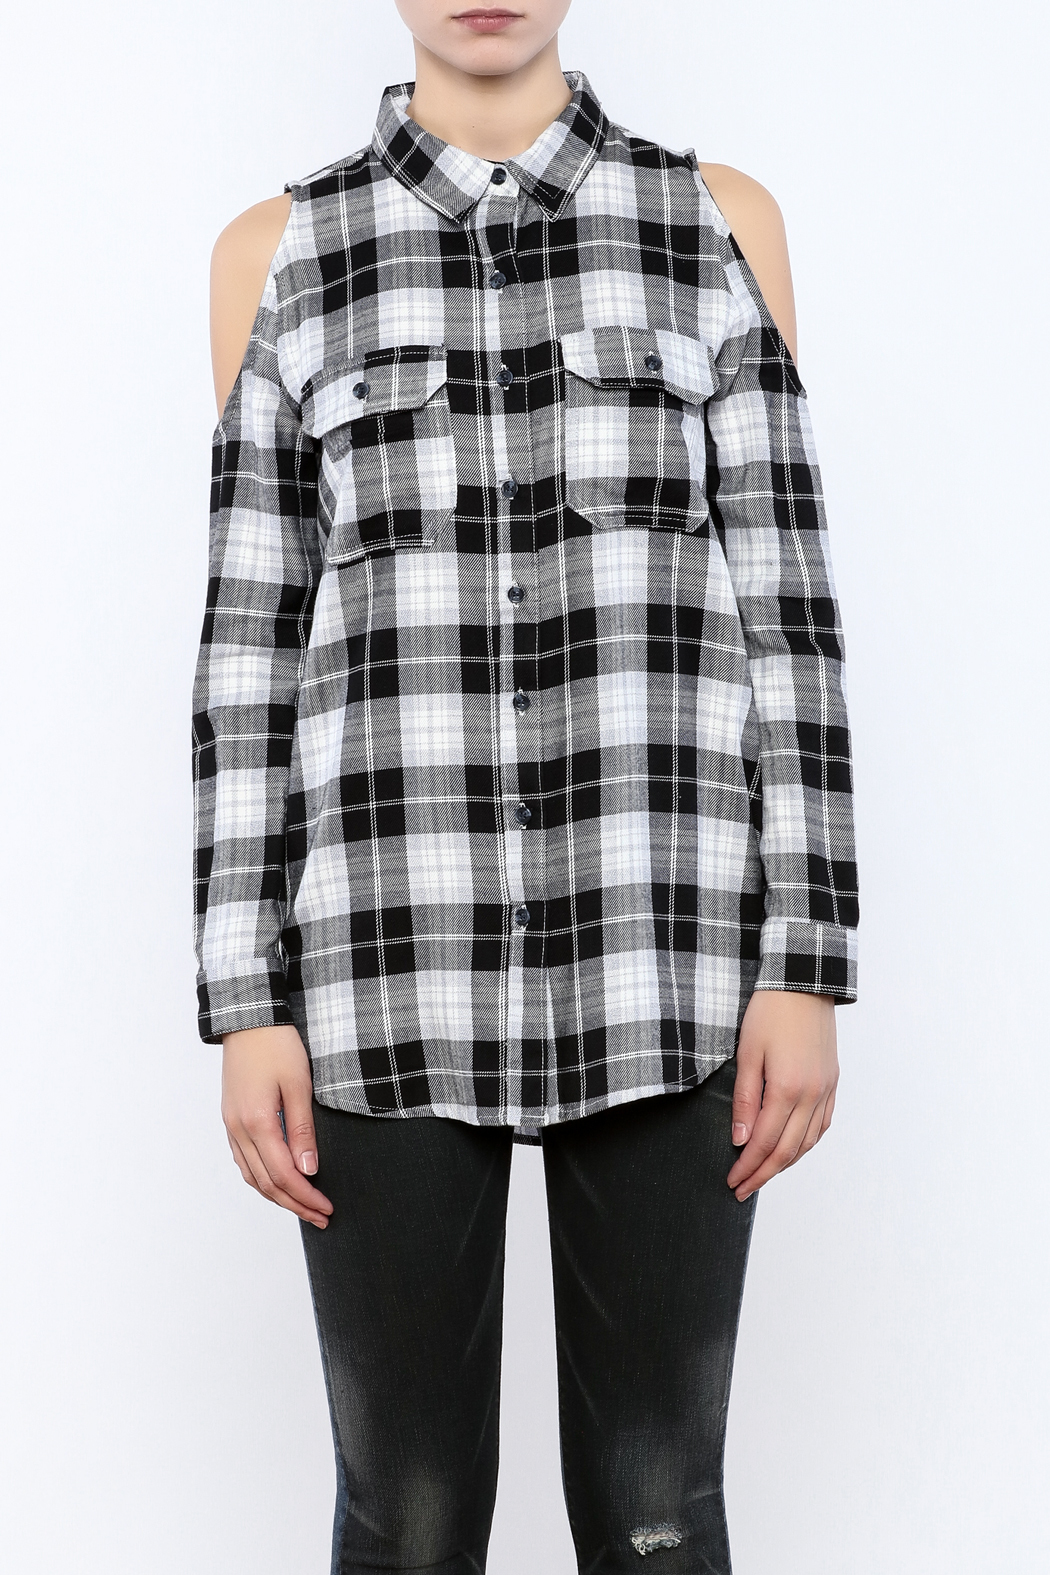 Velvet Heart Finely Cold Shoulder Plaid Top - Side Cropped Image